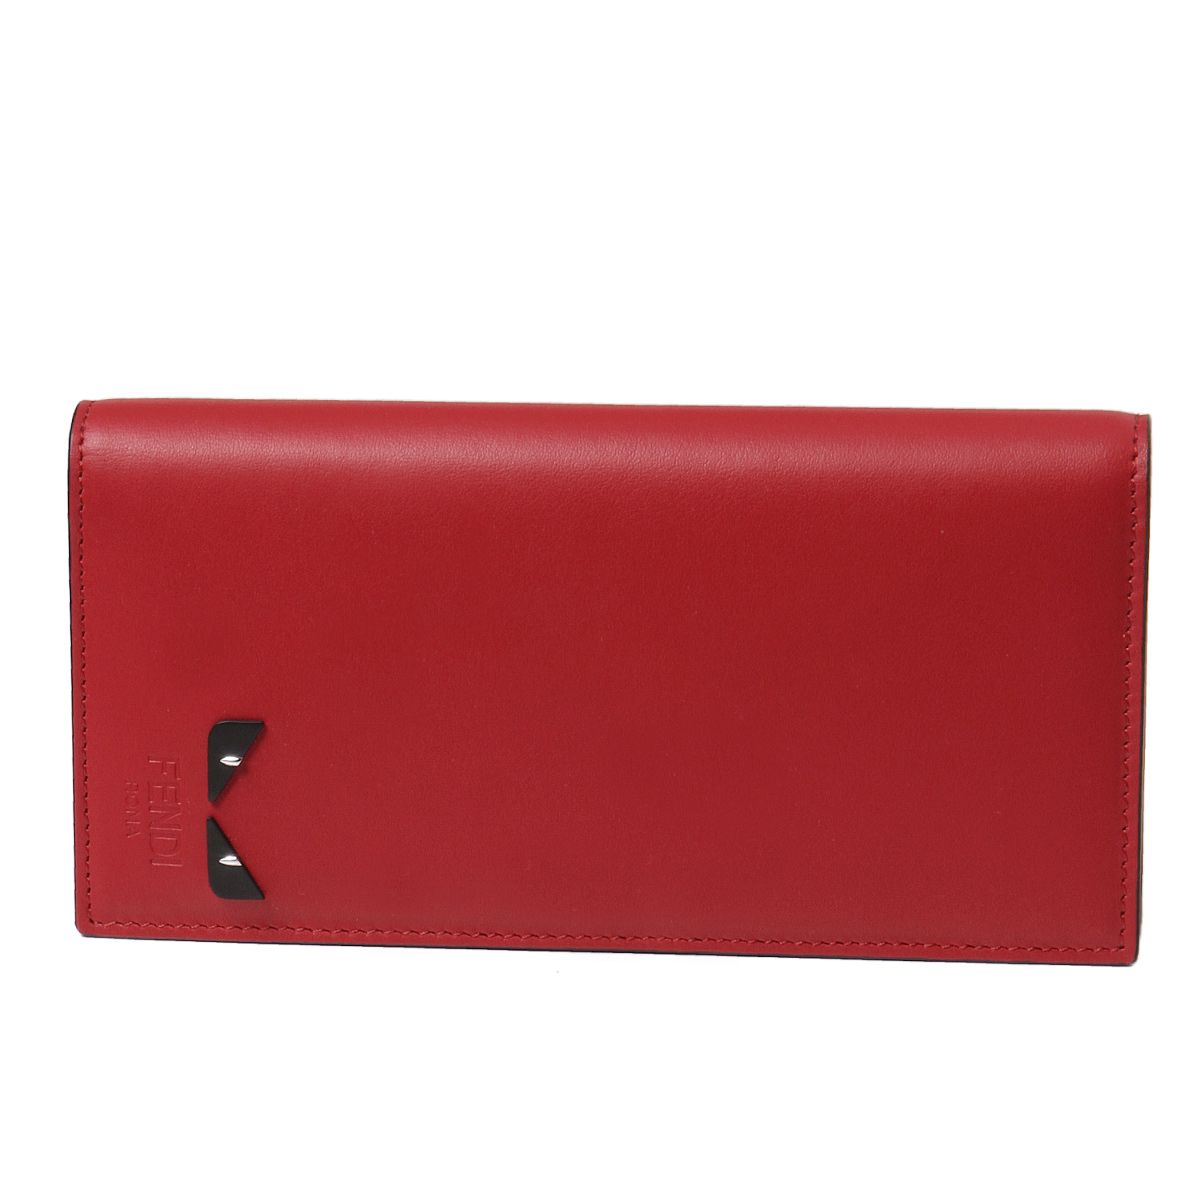 a902a6a3 Fendi FENDI wallet men 7M0186 A1W8 F08LP folio long wallet ROSSO+NERO+PALL  red